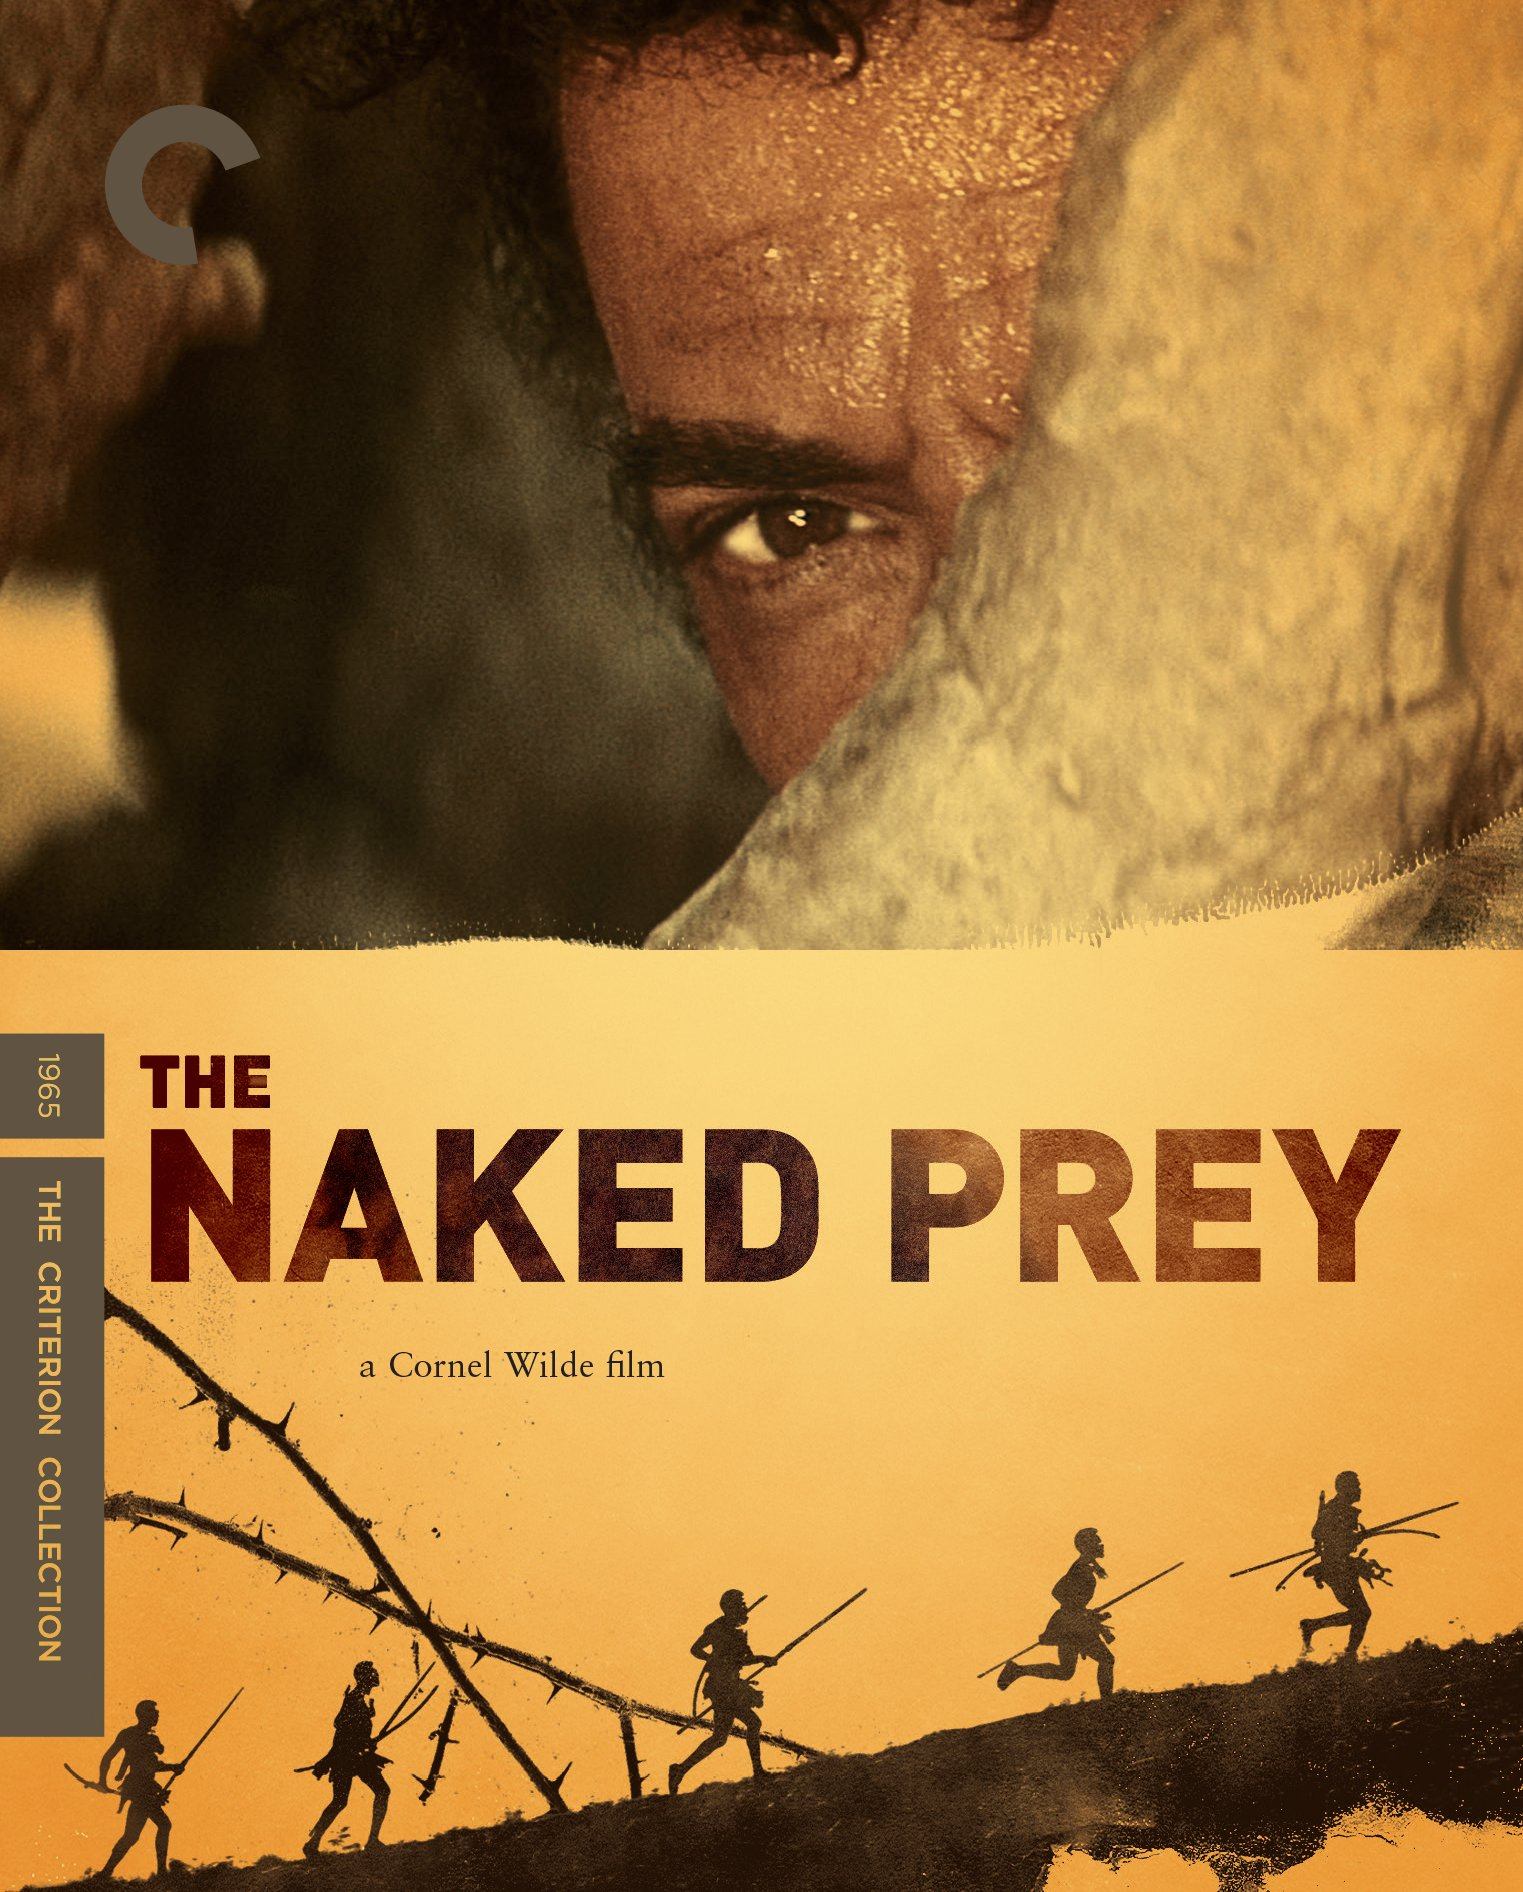 Blu-ray : The Naked Prey (criterion Collection) (Special Edition, Restored, Widescreen, Mono Sound, Subtitled)